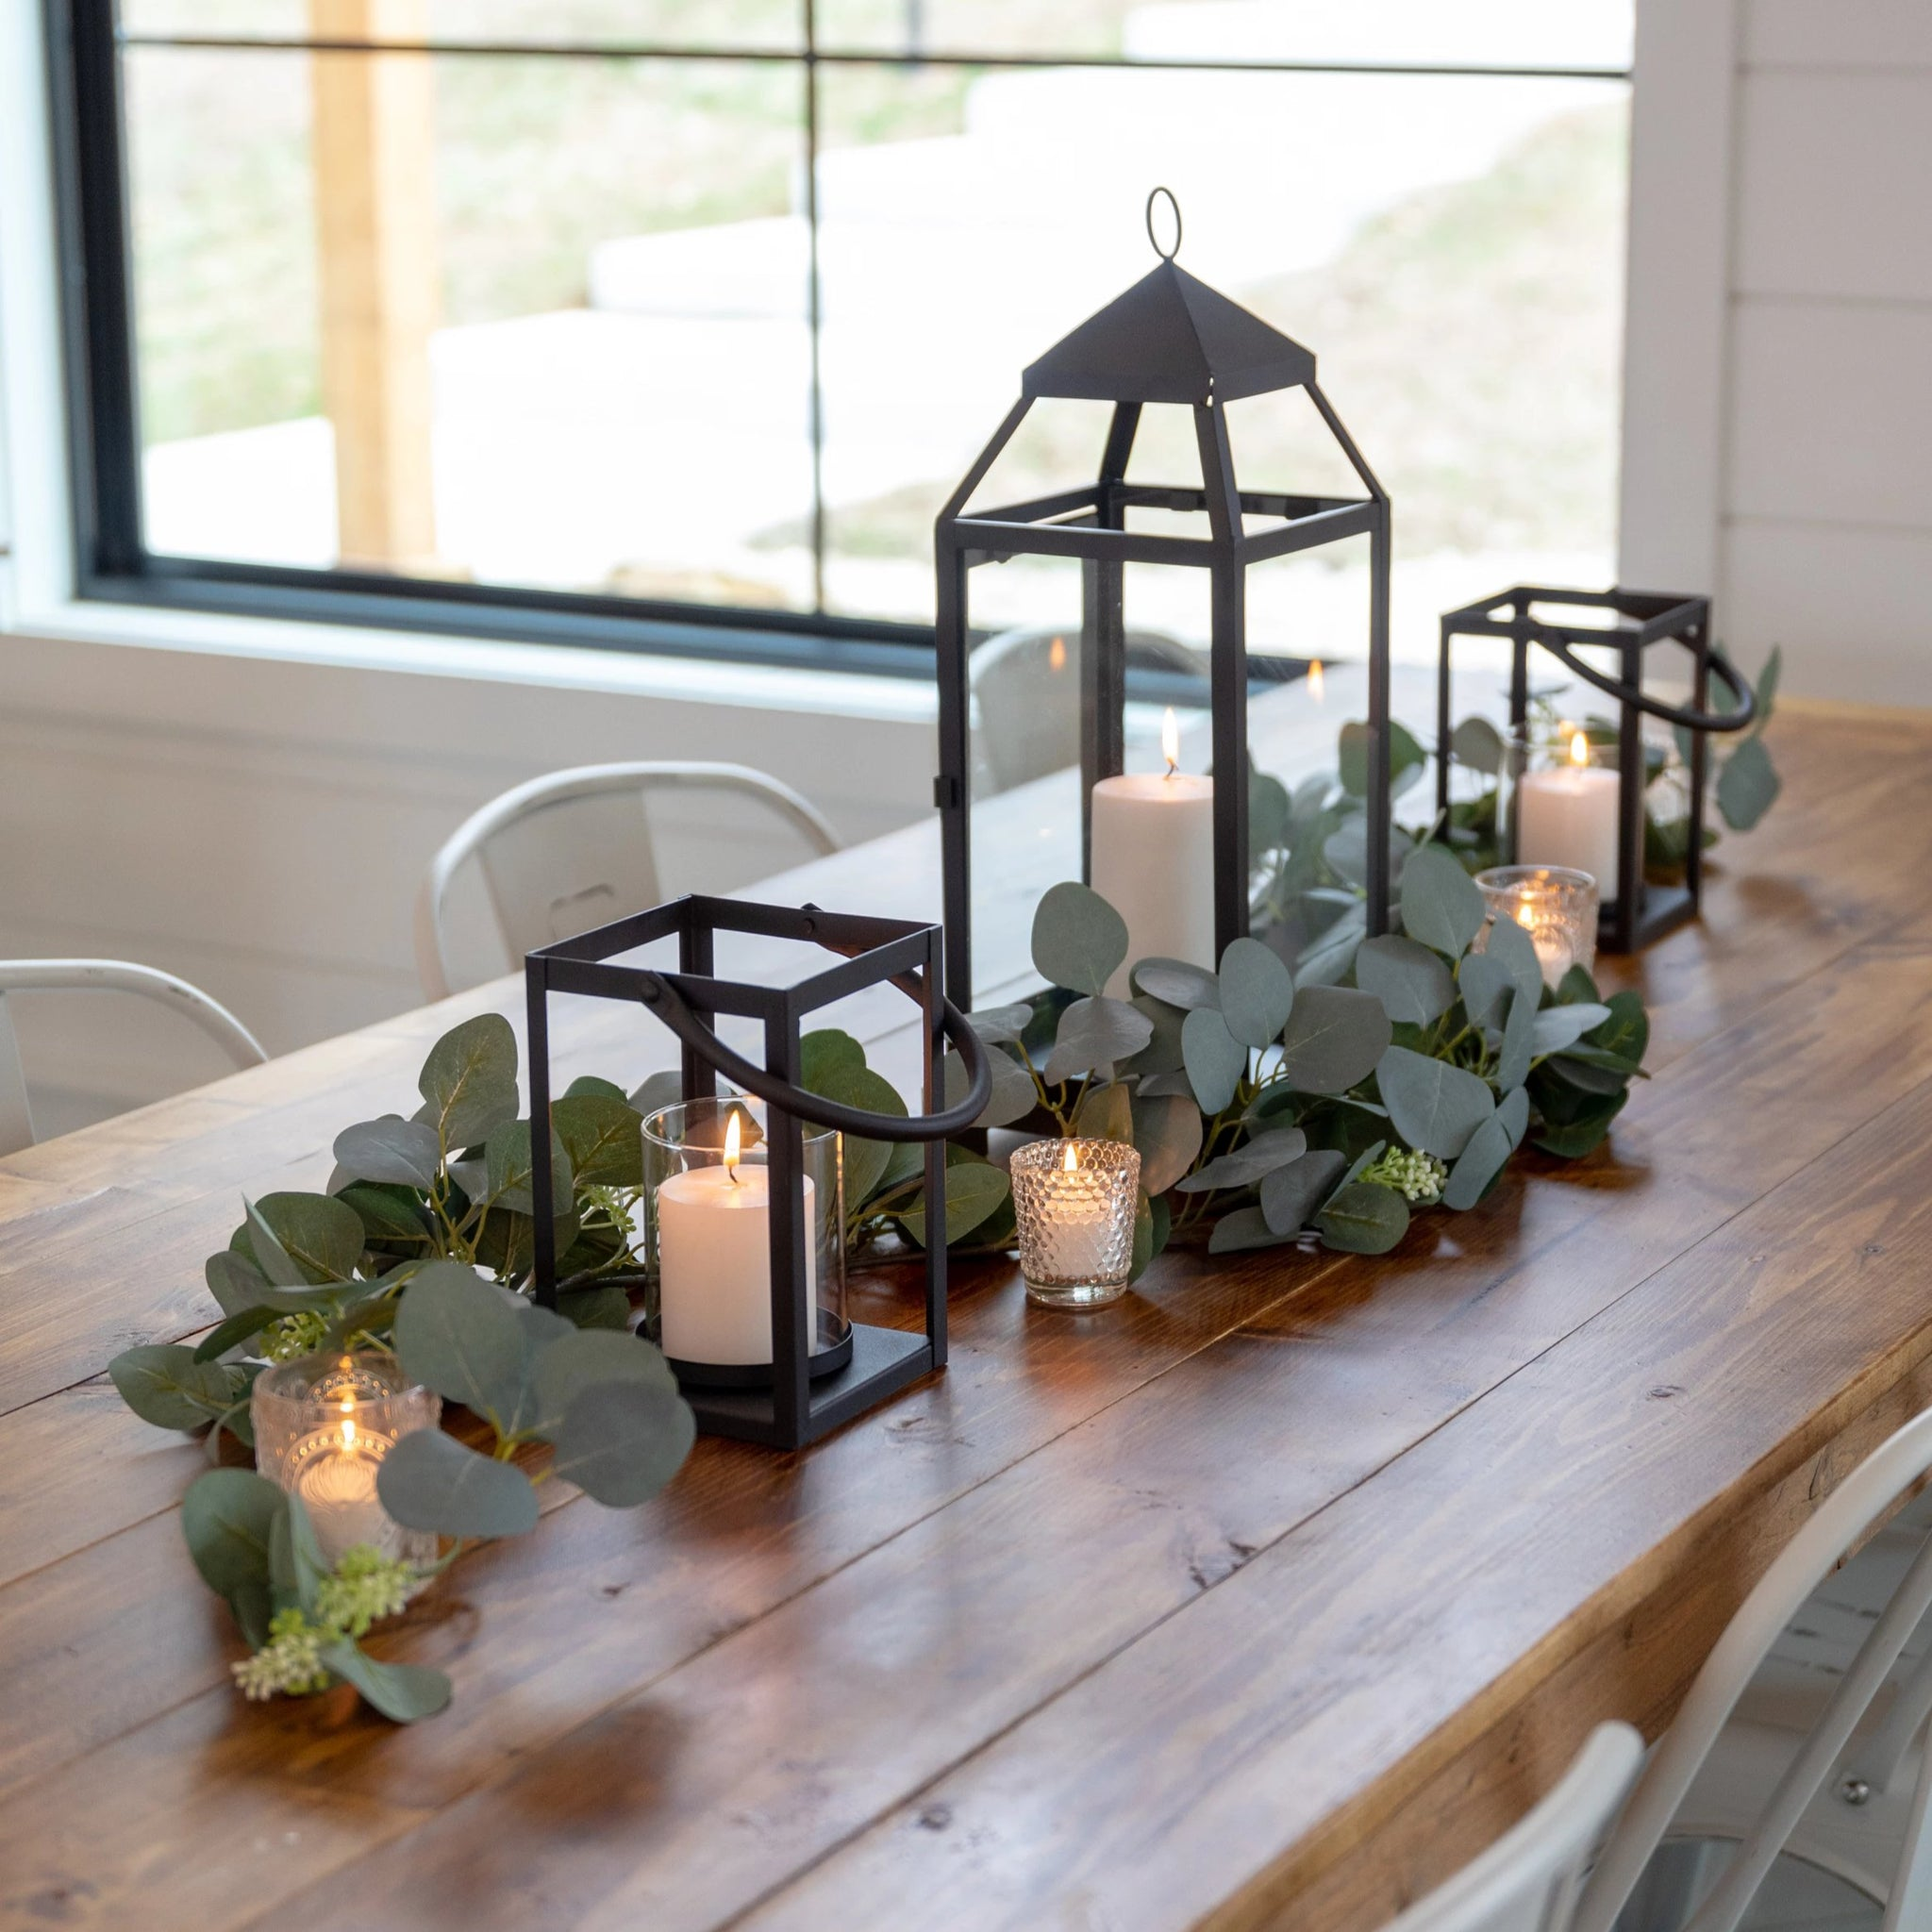 The Black Table Decor Rental Collection The Wilds Venue Shop